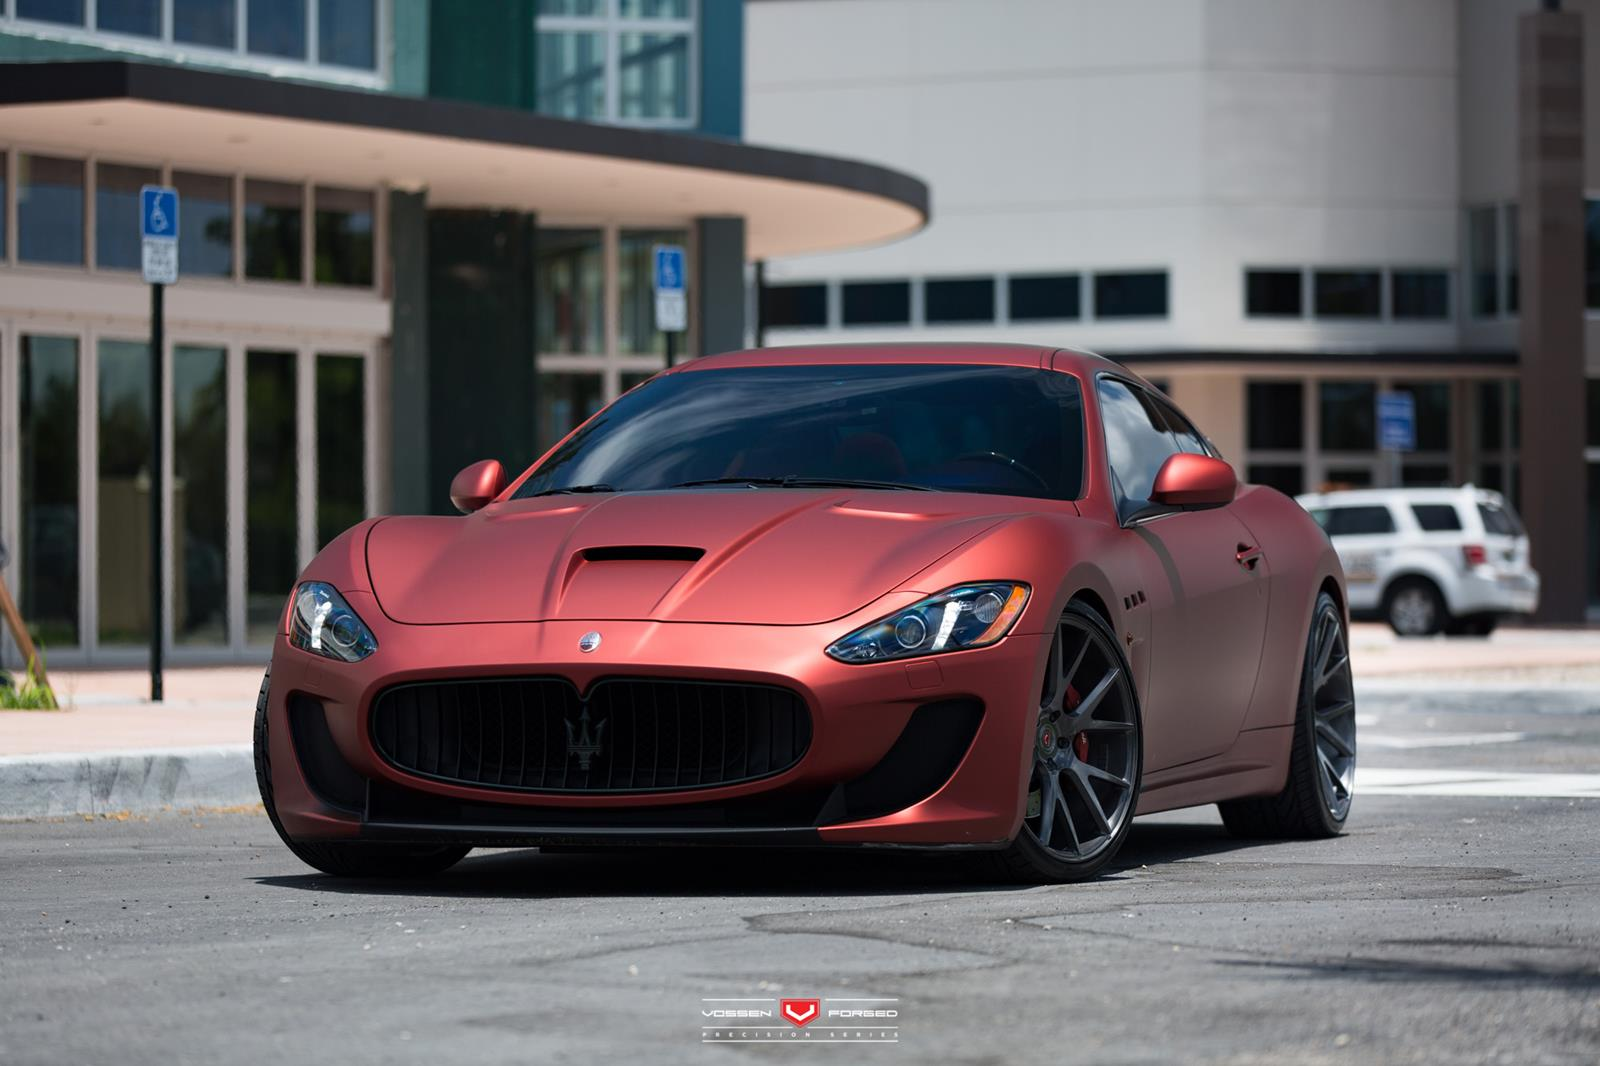 maserati granturismo mc sportline by vossen. Black Bedroom Furniture Sets. Home Design Ideas